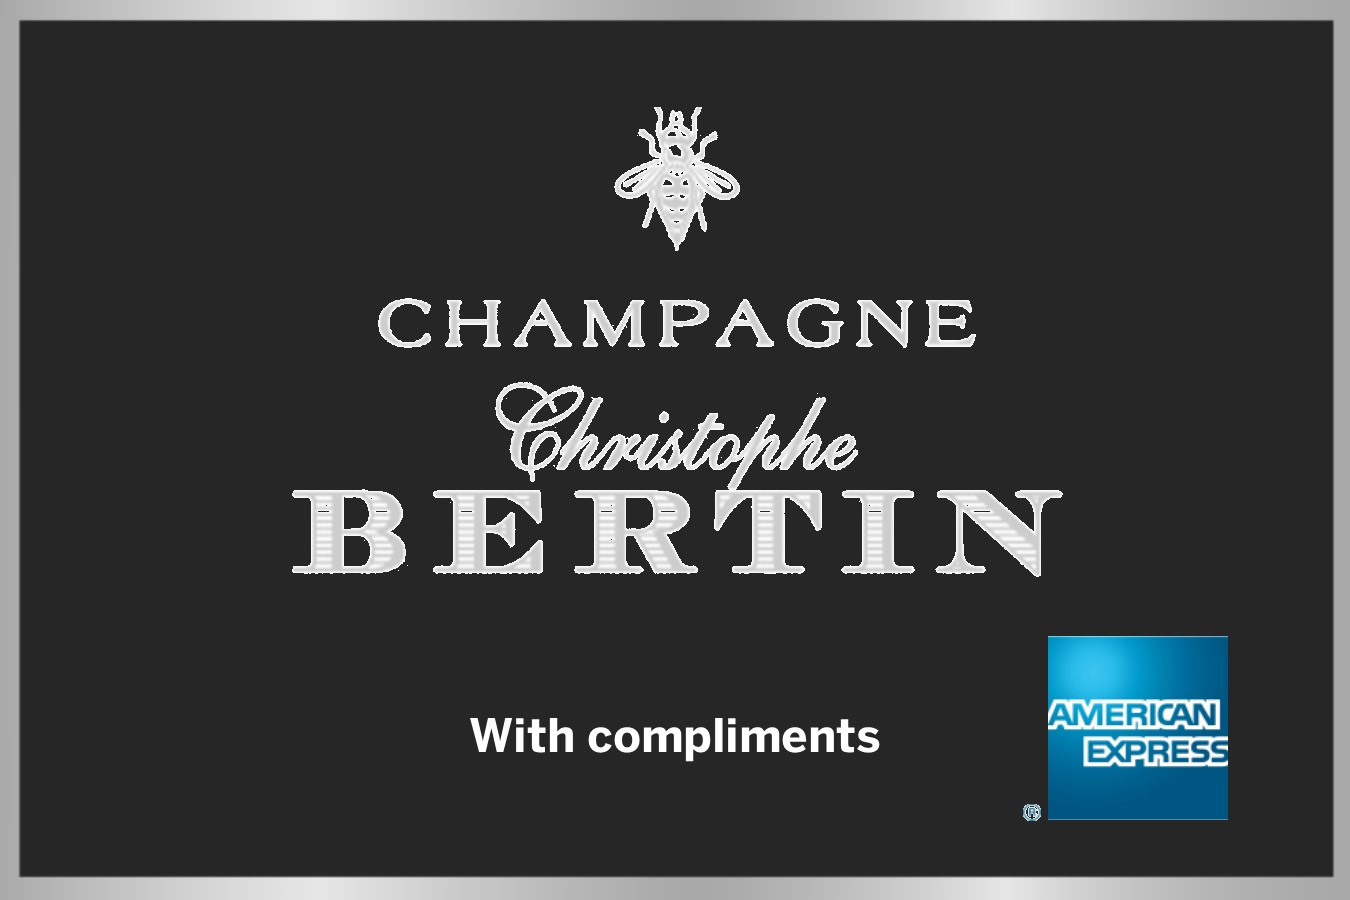 American Express Event Champagne